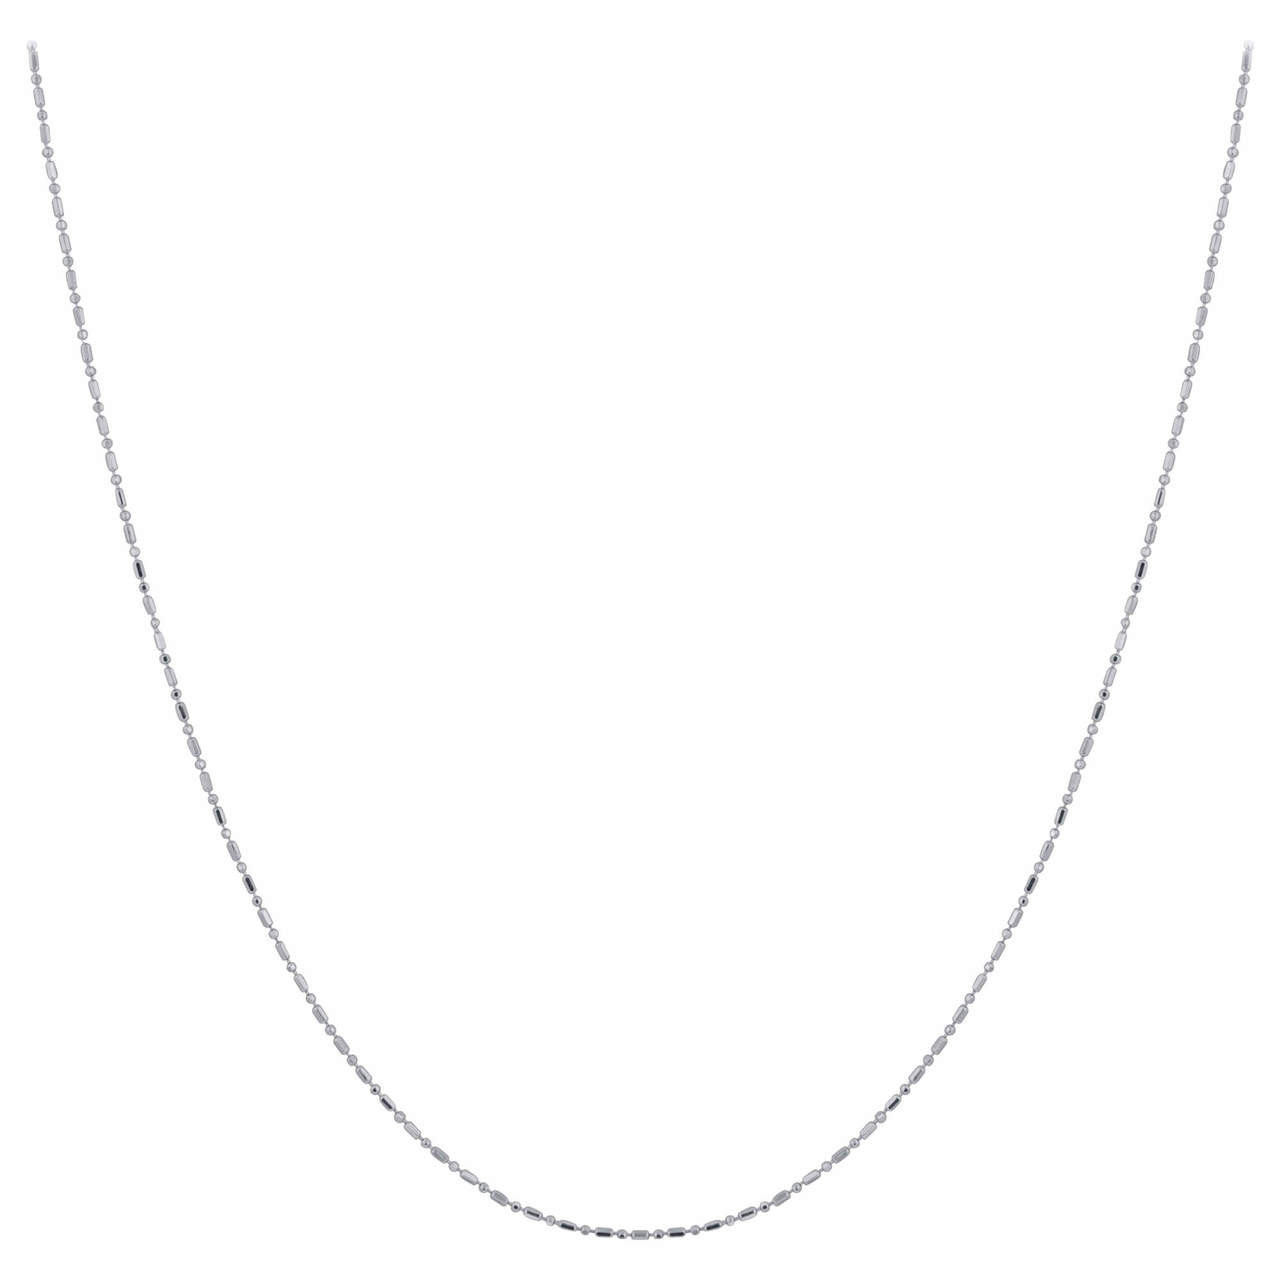 Chain Necklace with Spring Ring Clasp